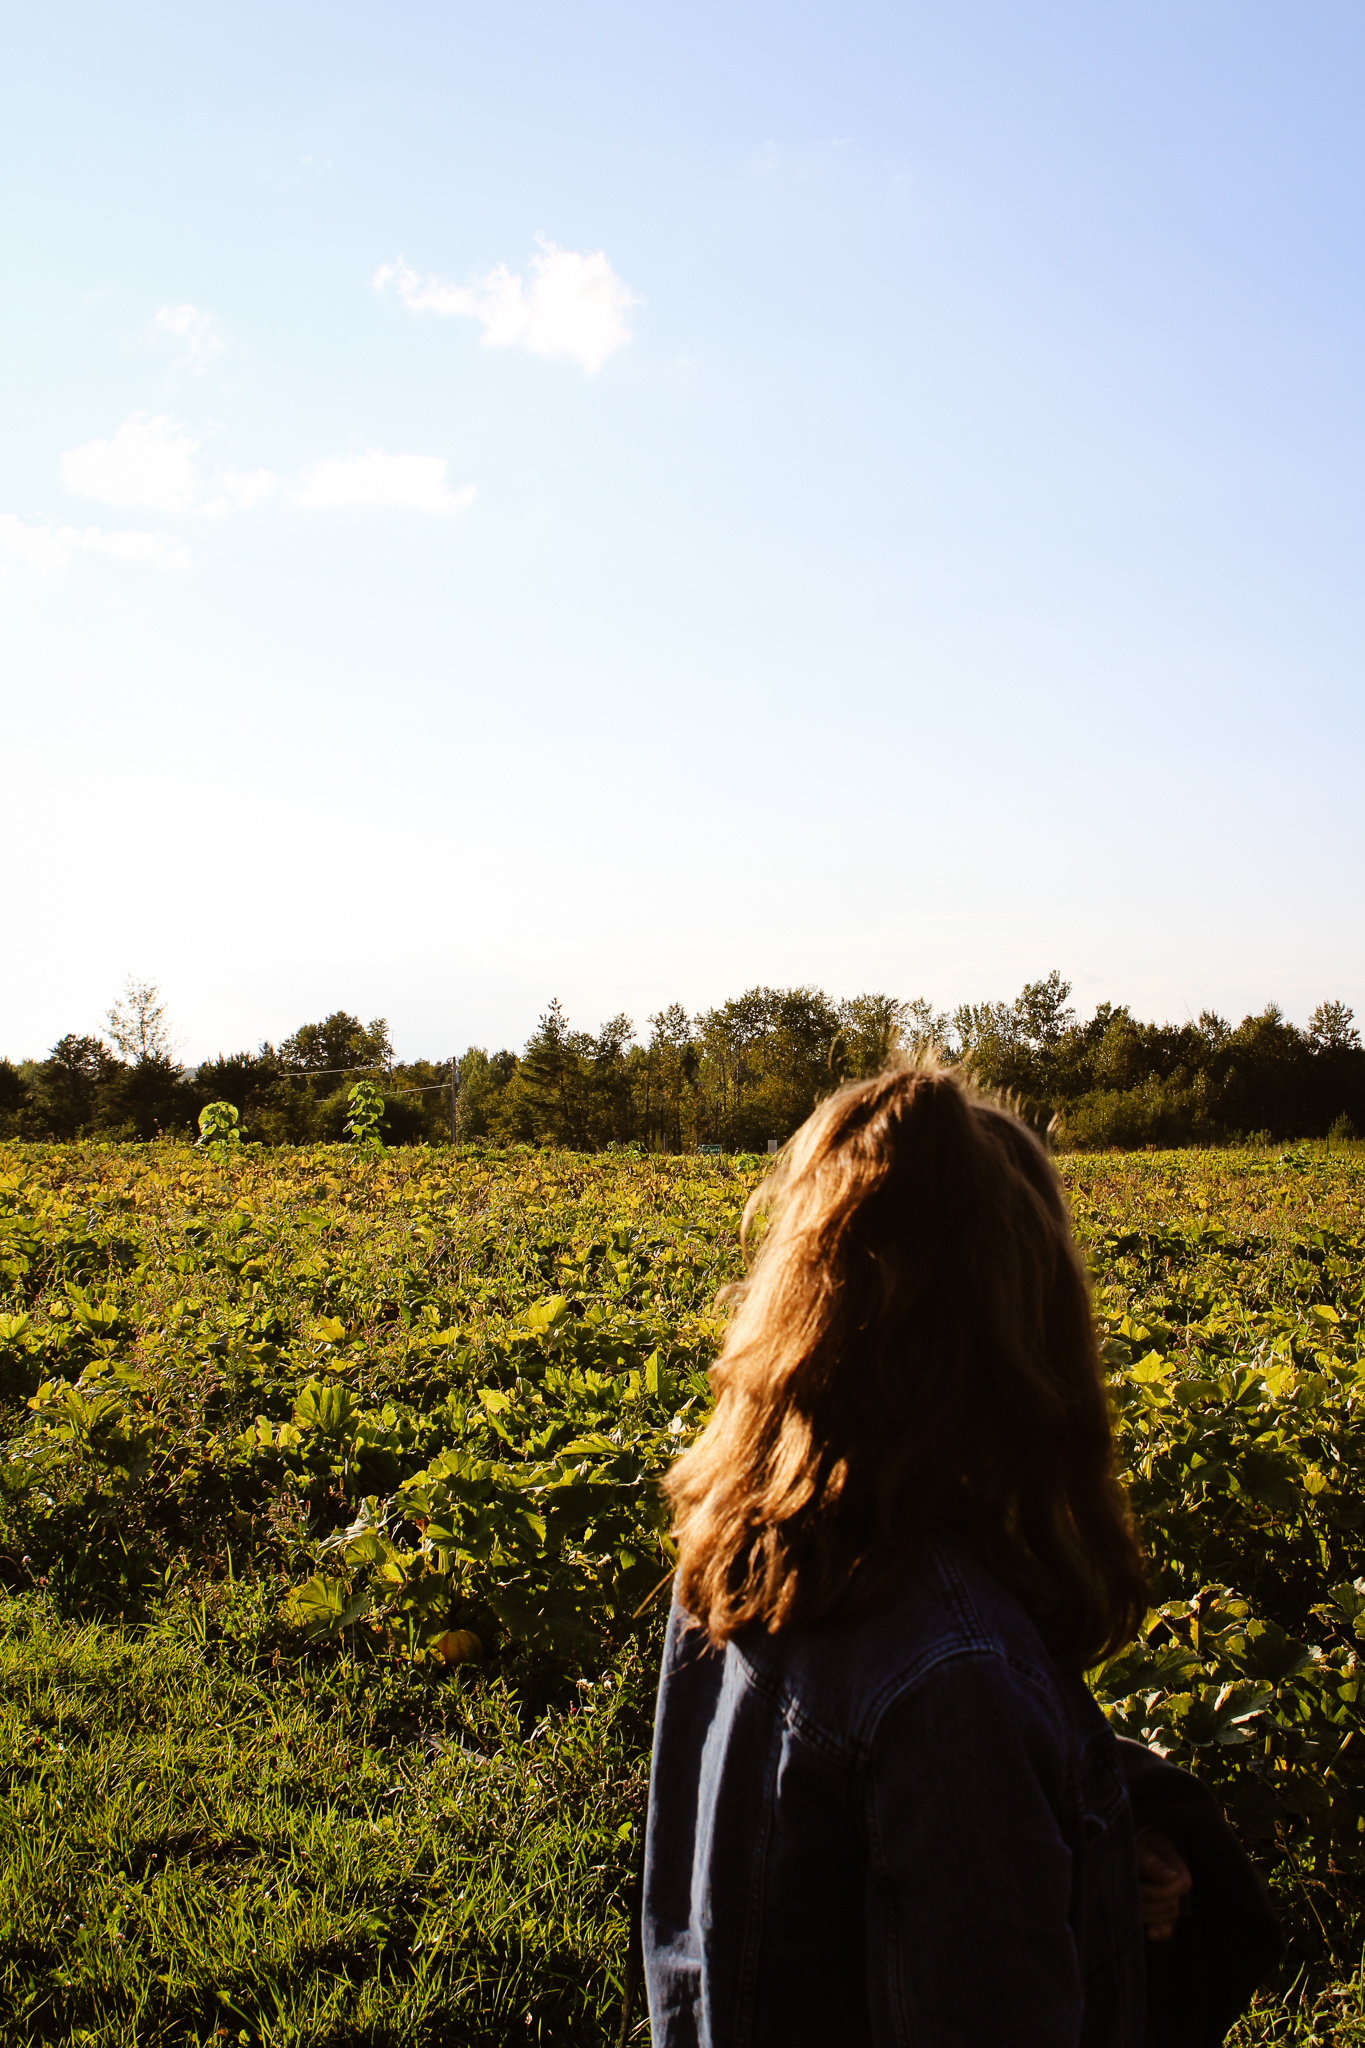 UMD student looking out over the SAP farm. Photo taken by Morgan Pint.